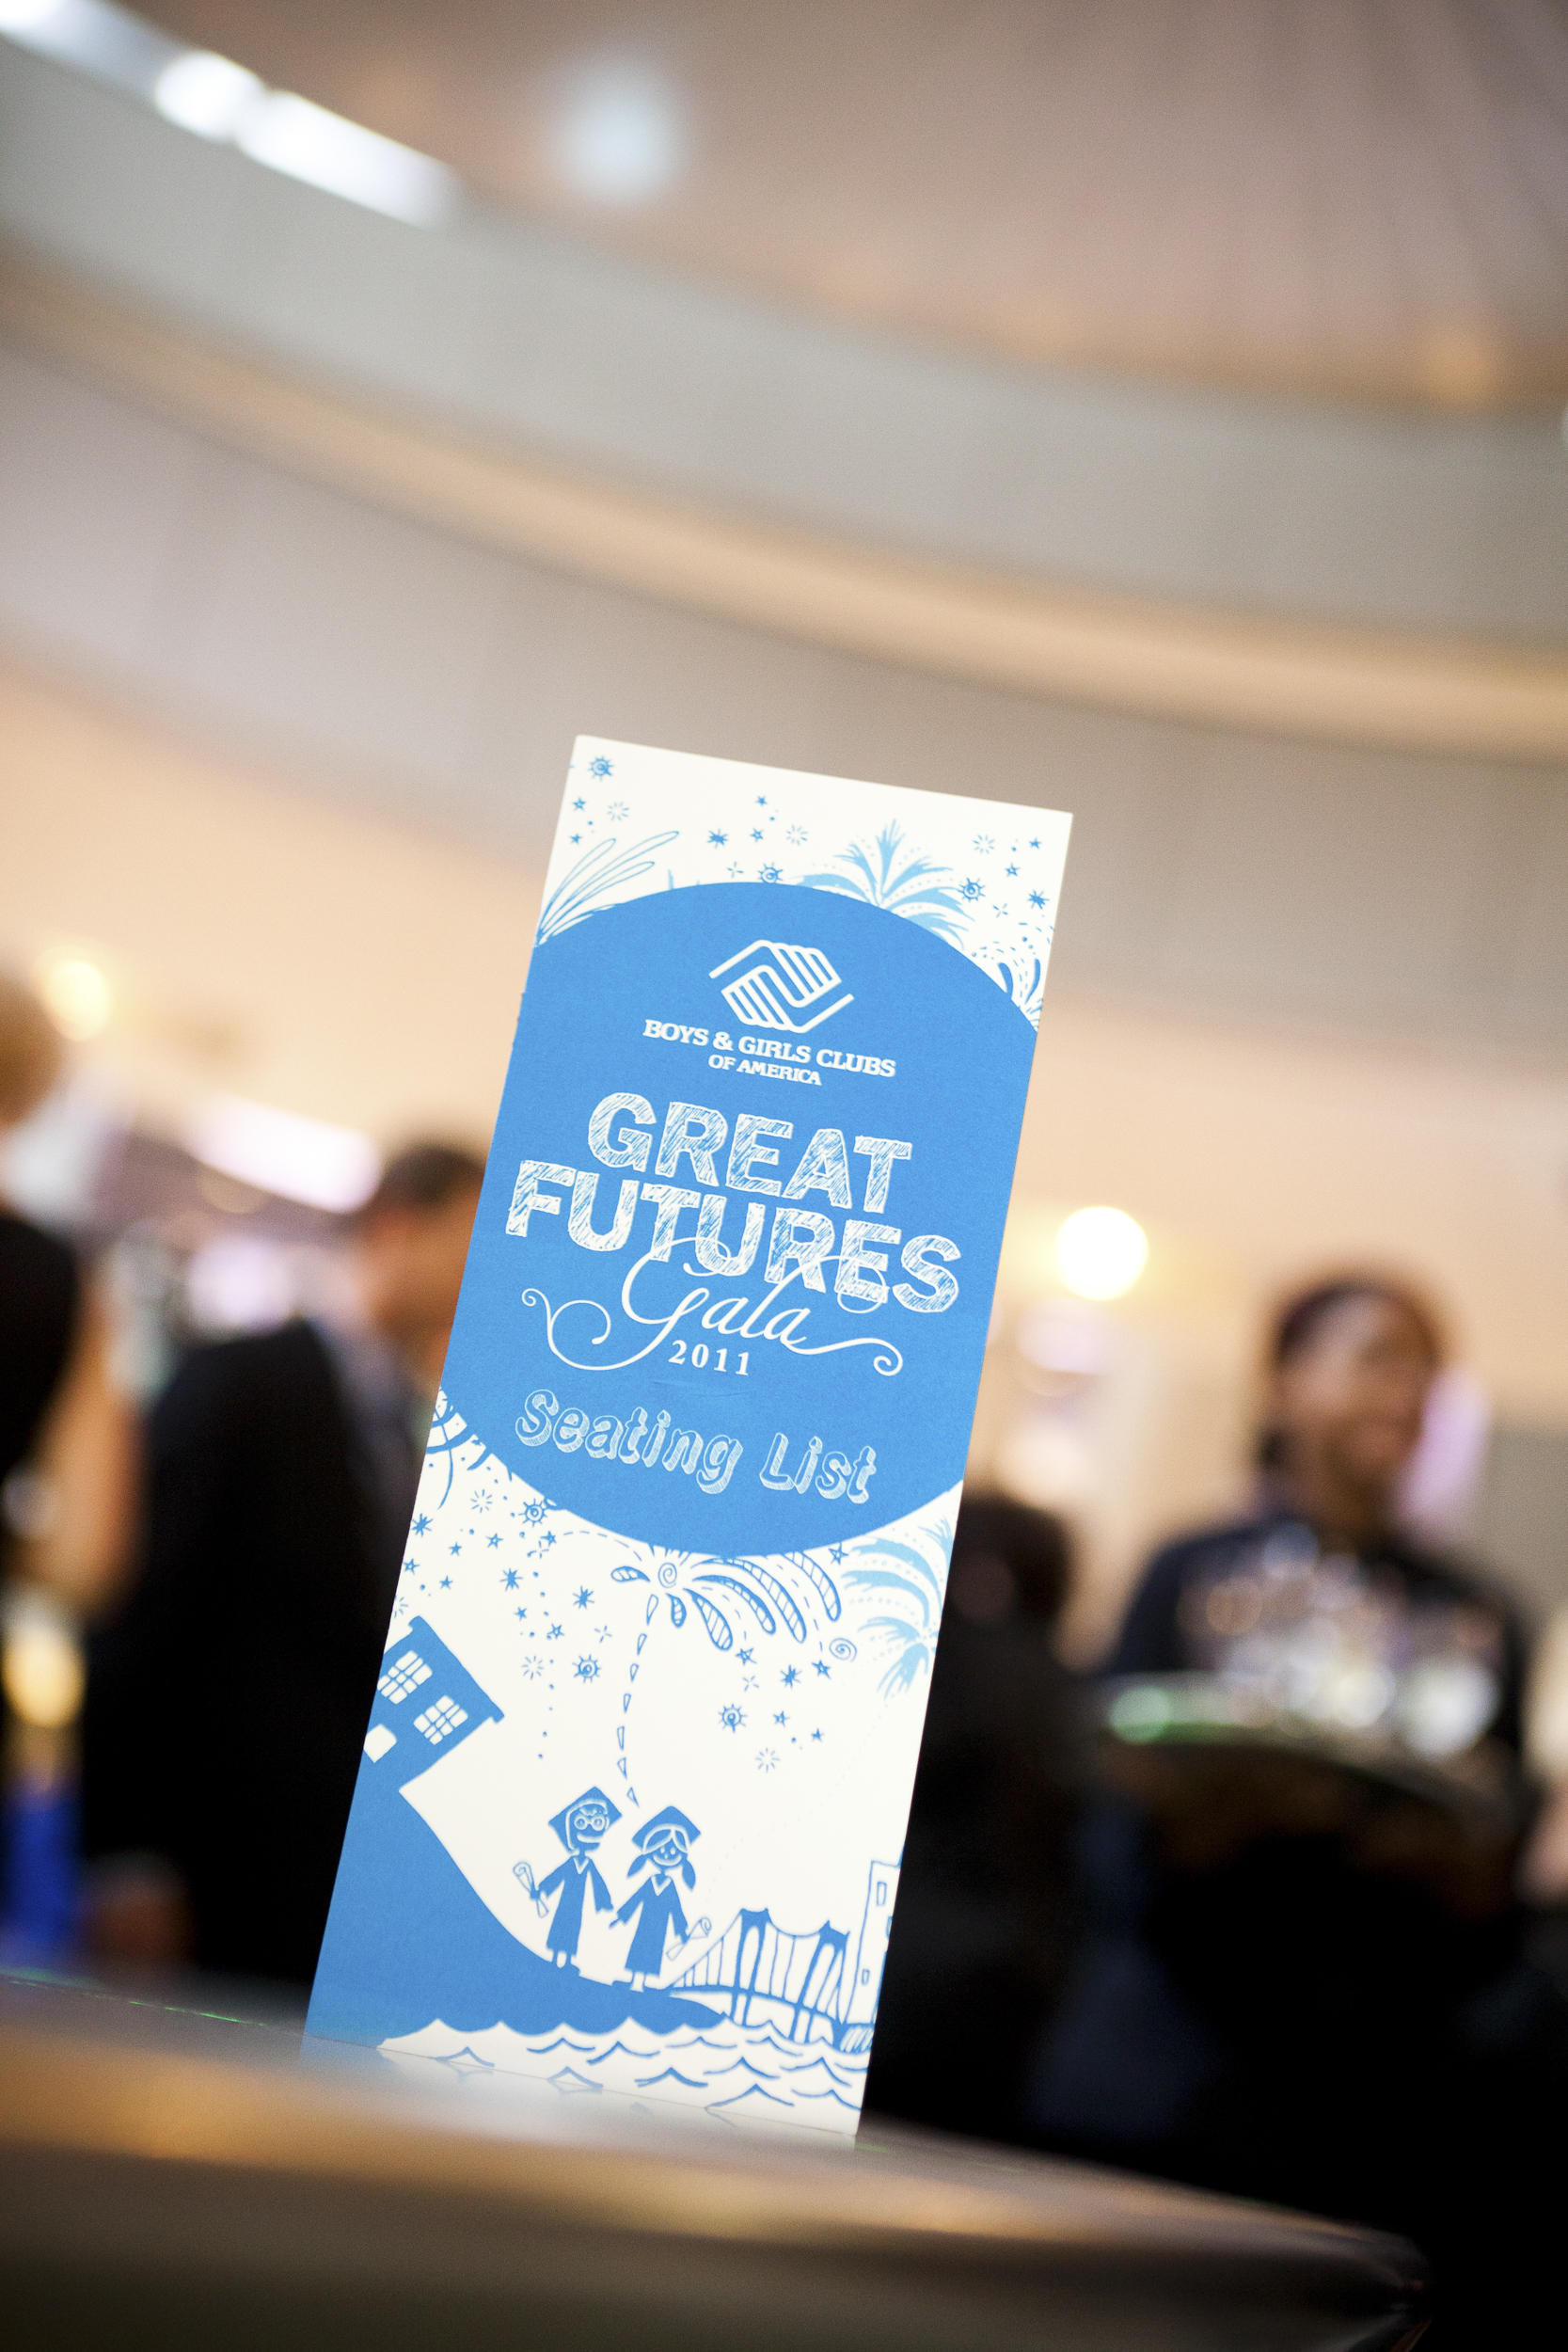 ceci-new-york-gives-back-boys-and-girls-club-of-america-great-futures-gala-2011-invitations-party-decor-museum-of-natural-history-event-space-venue-25.jpg